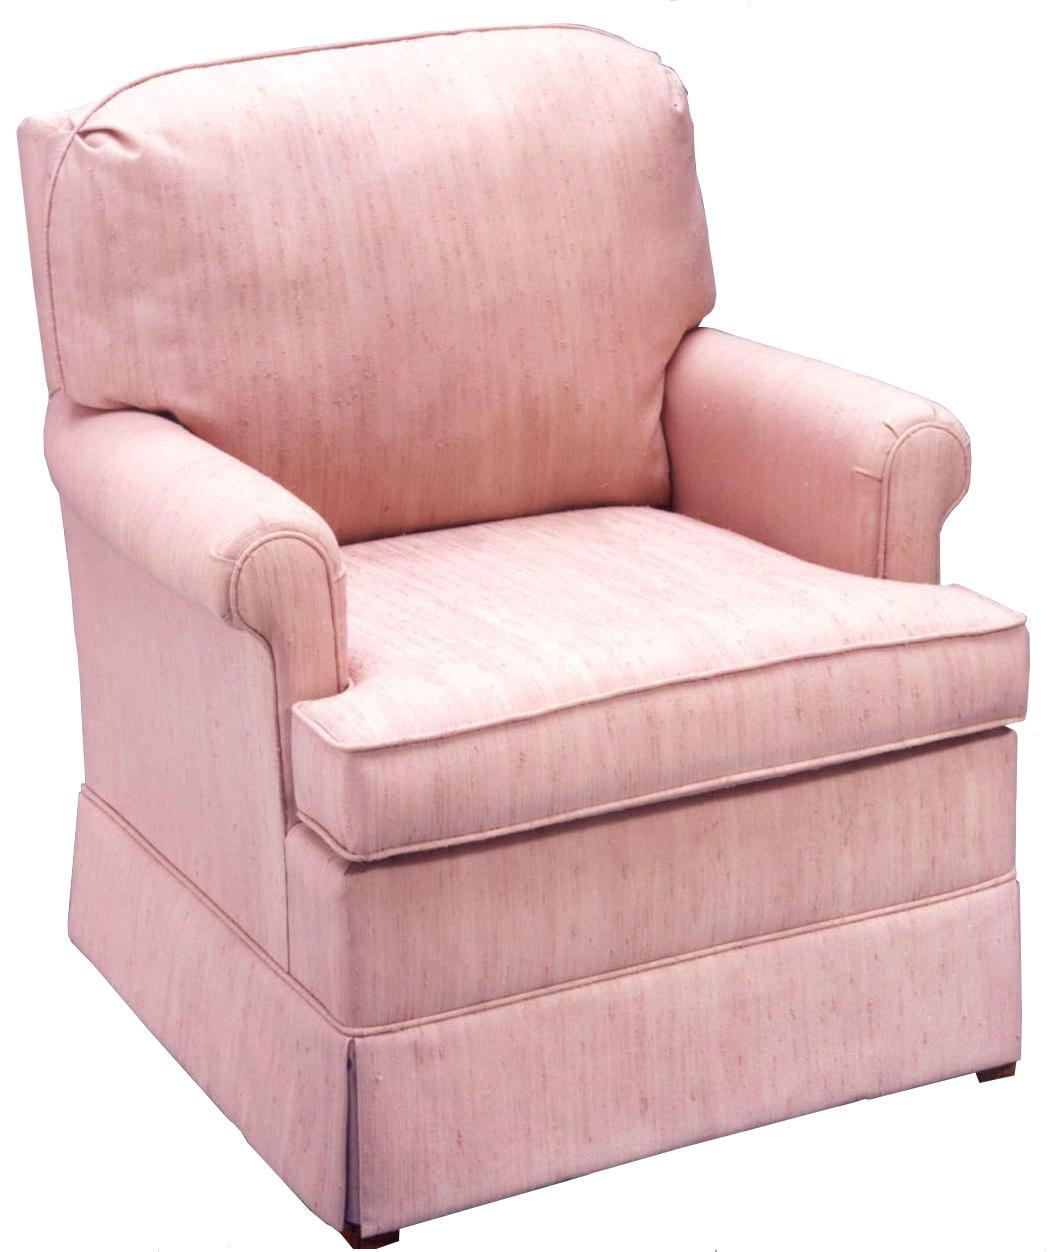 Comfortable Glider Club Chair By Best Home Furnishings